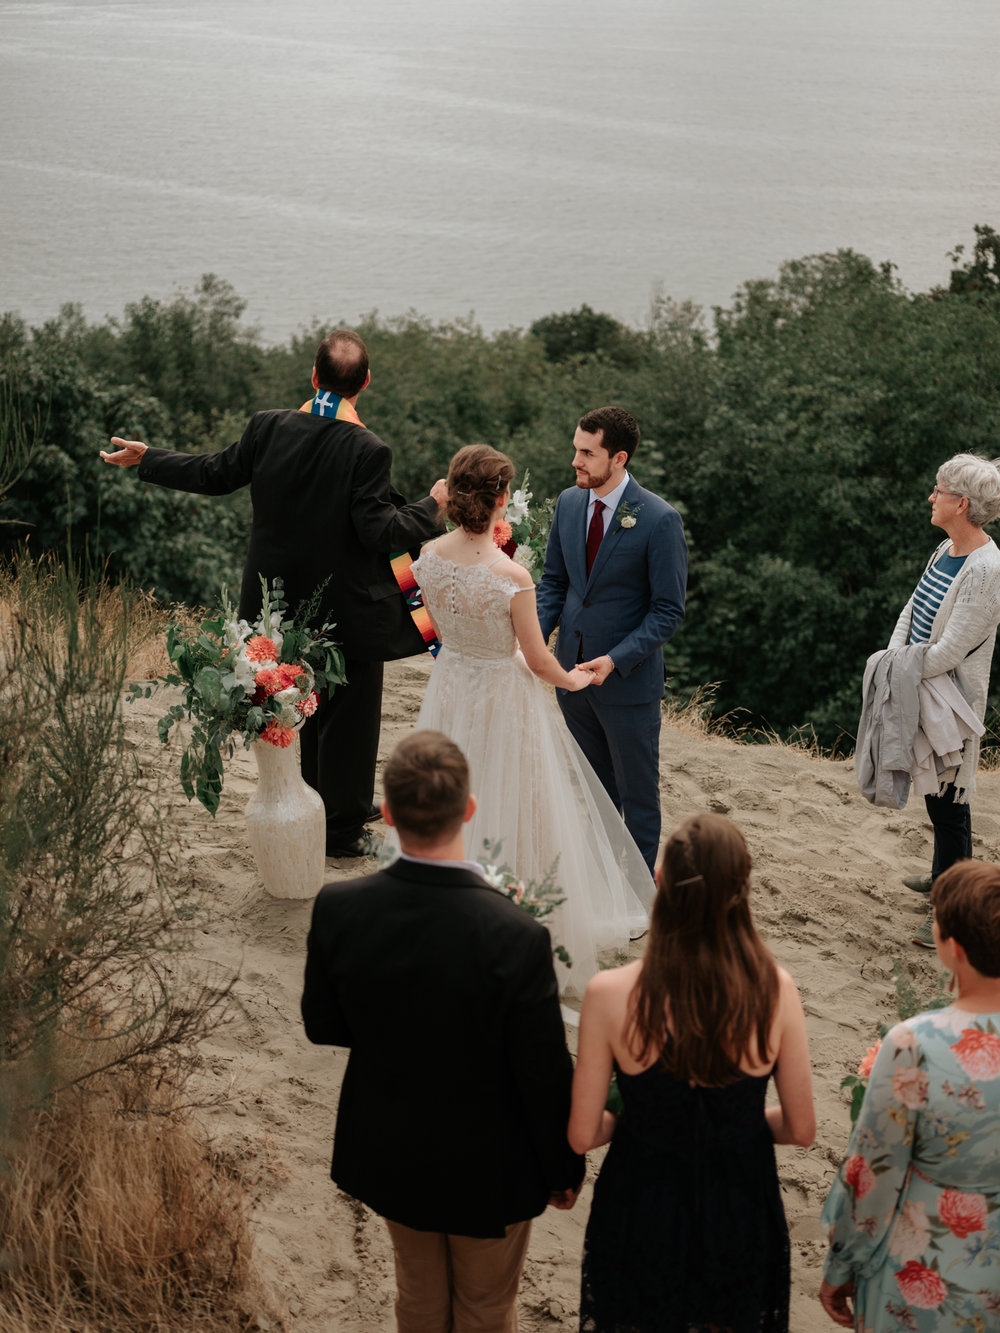 Stolen Glimpses Seattle Wedding Photographer at Discovery Park4.jpg